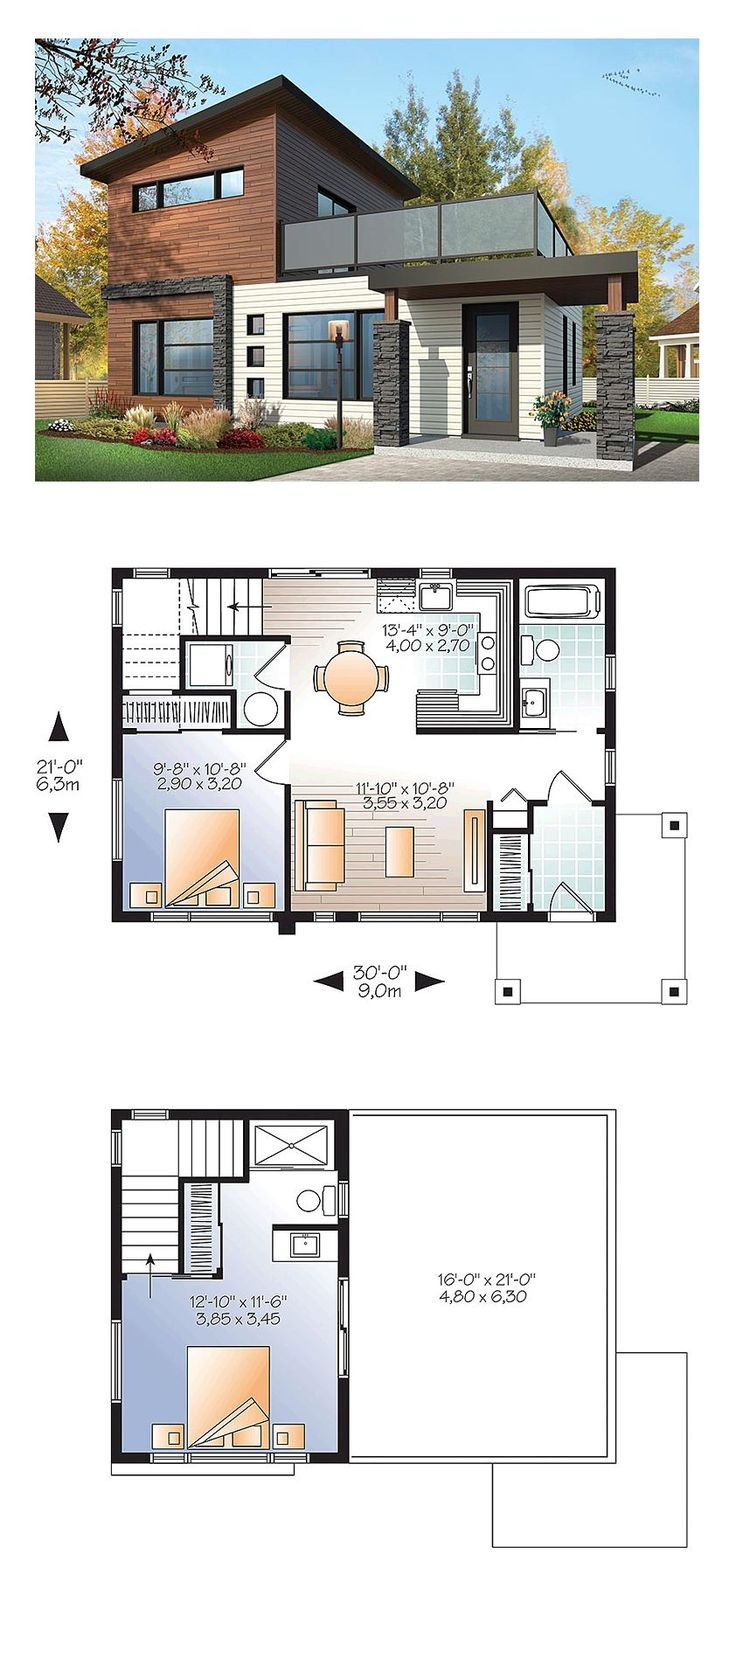 Layout design house - Modern House Plan 76461 Total Living Area 924 Sq Ft 2